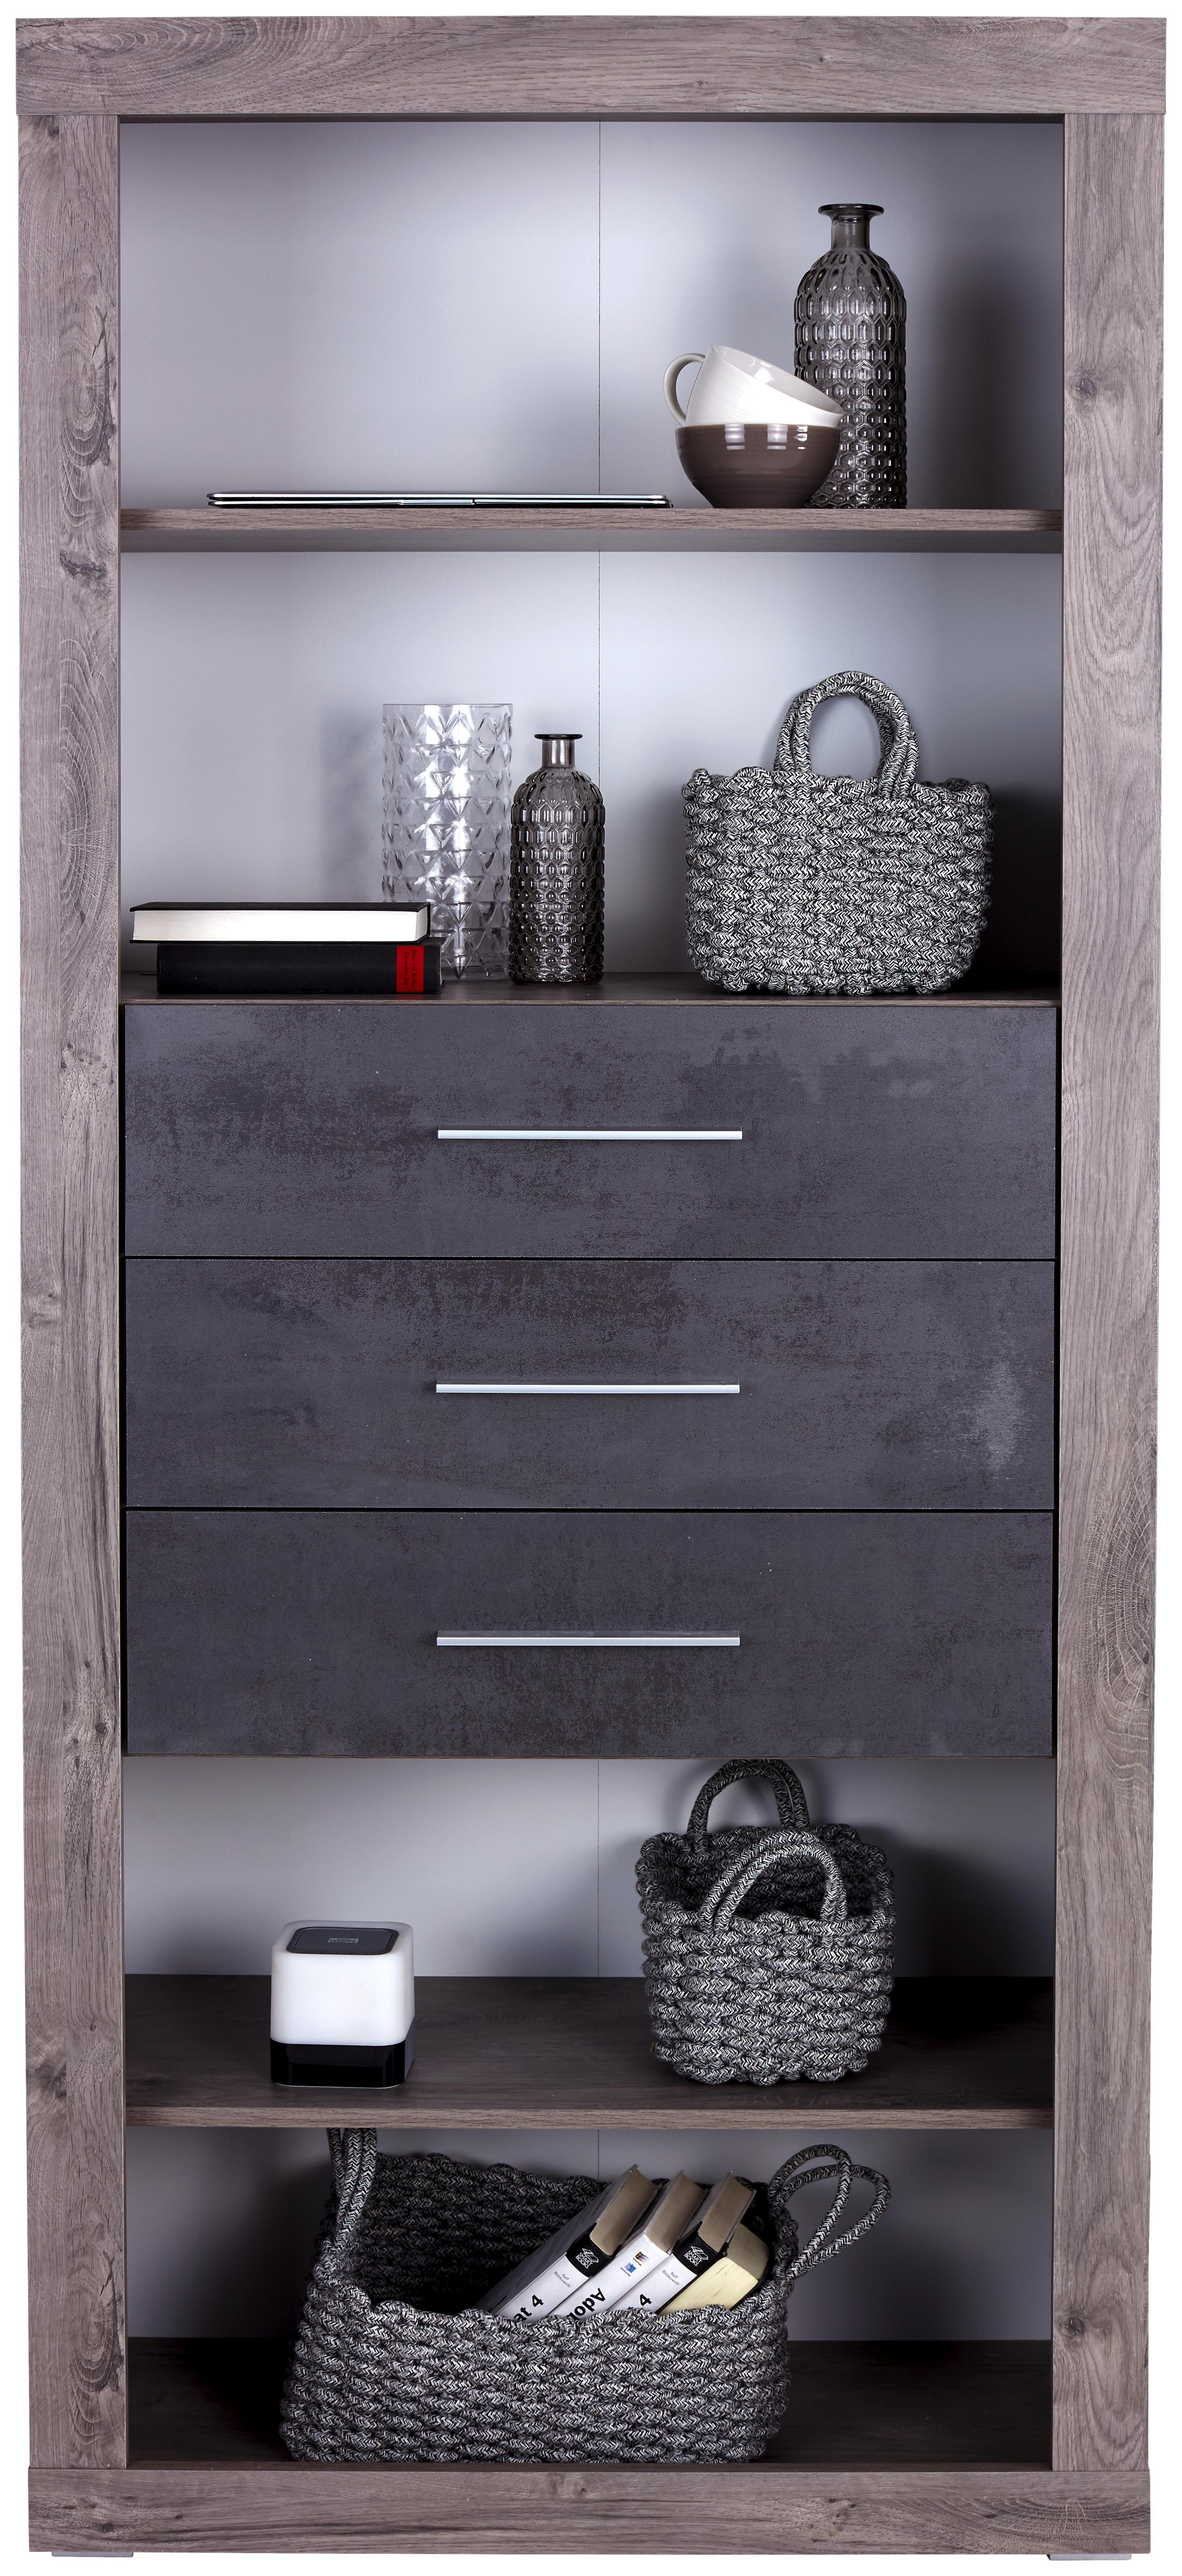 Küche Eckschrank Lift Regal Frame